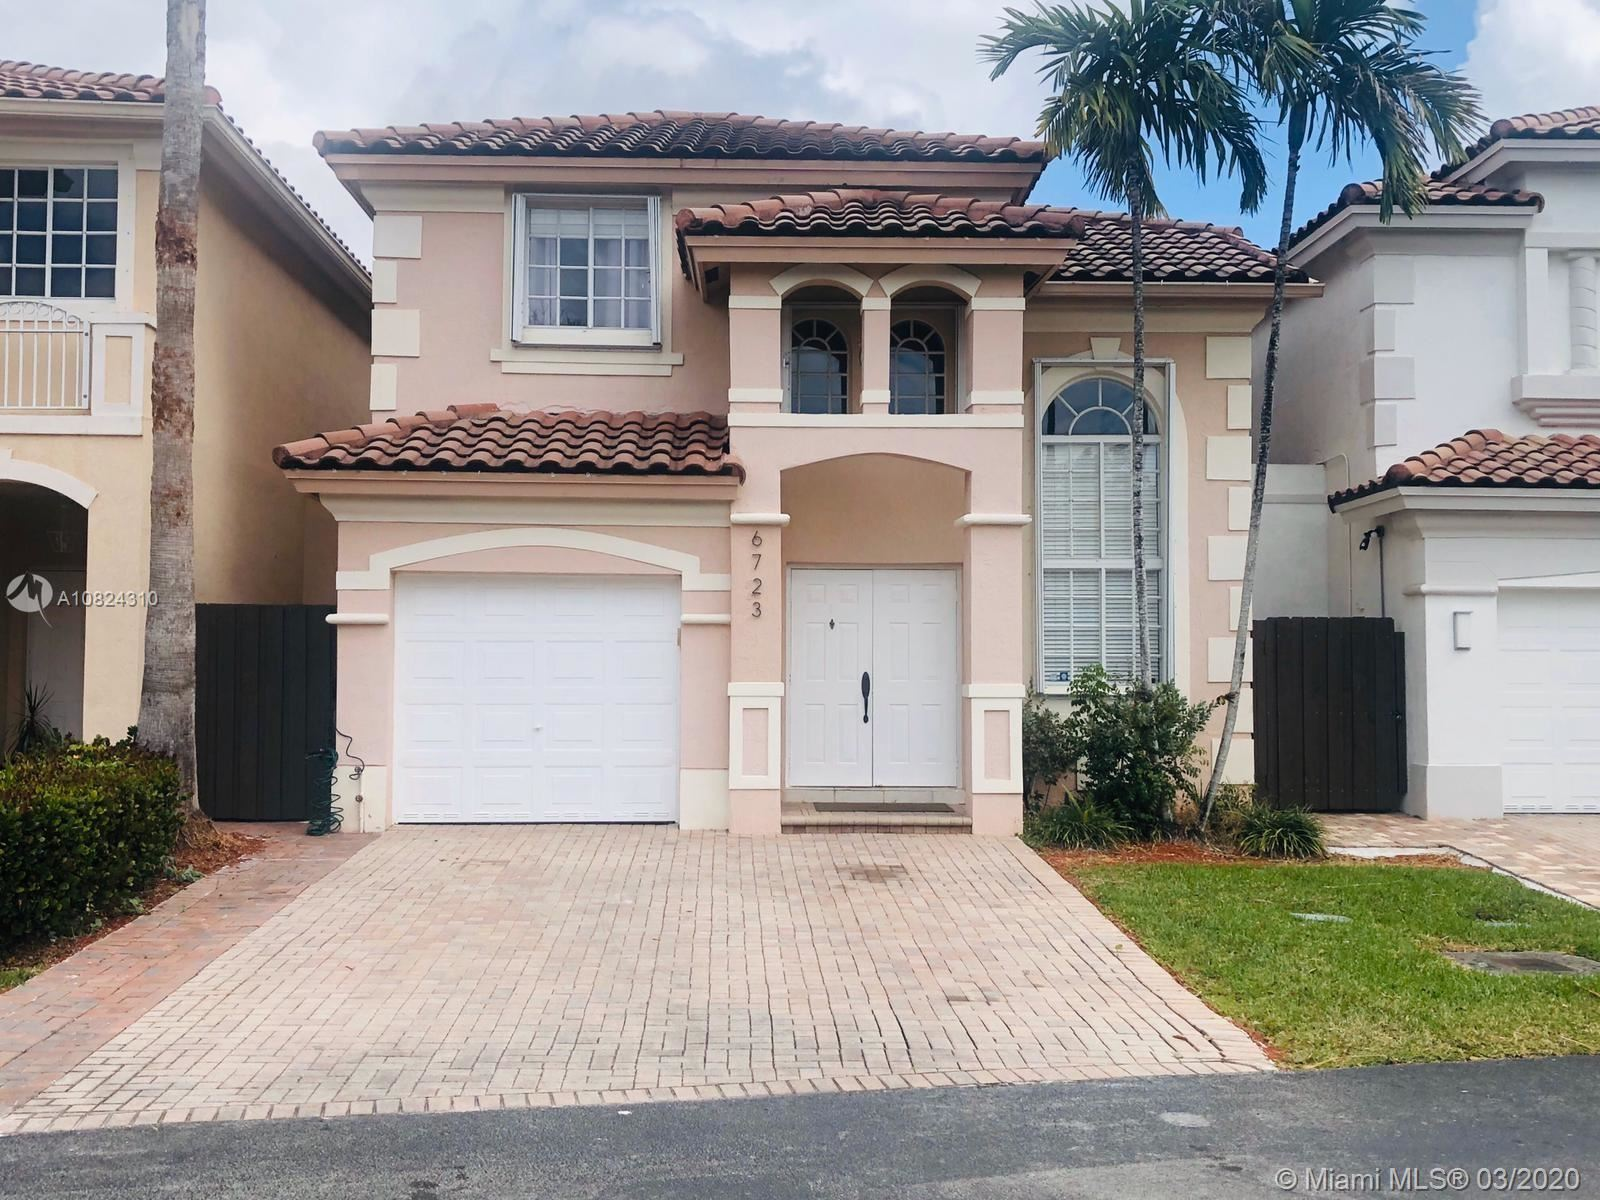 6723 NW 109th Ave #6723, Doral, FL 33178 - #: A10824310